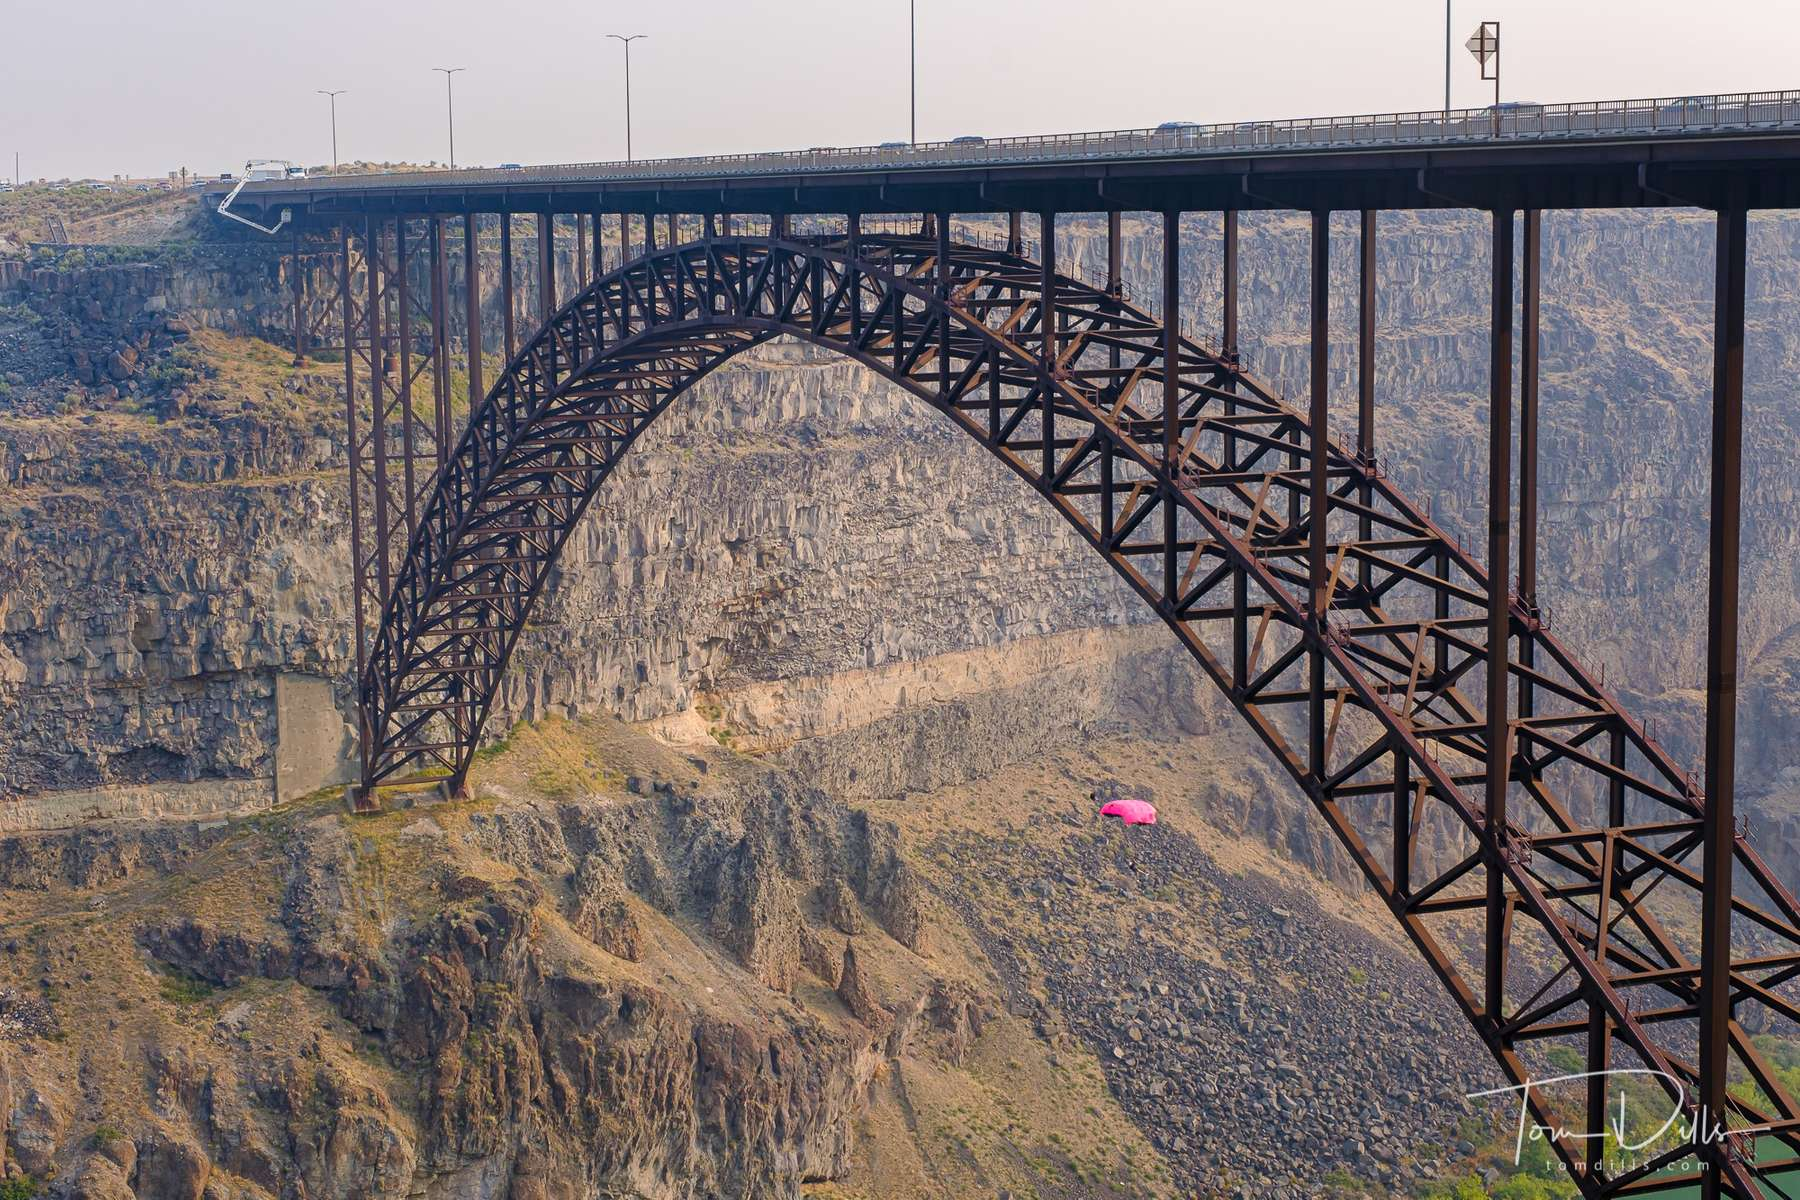 BASE jumpers at the Perrine Memorial Bridge over the Snake River in Twin Falls, Idaho